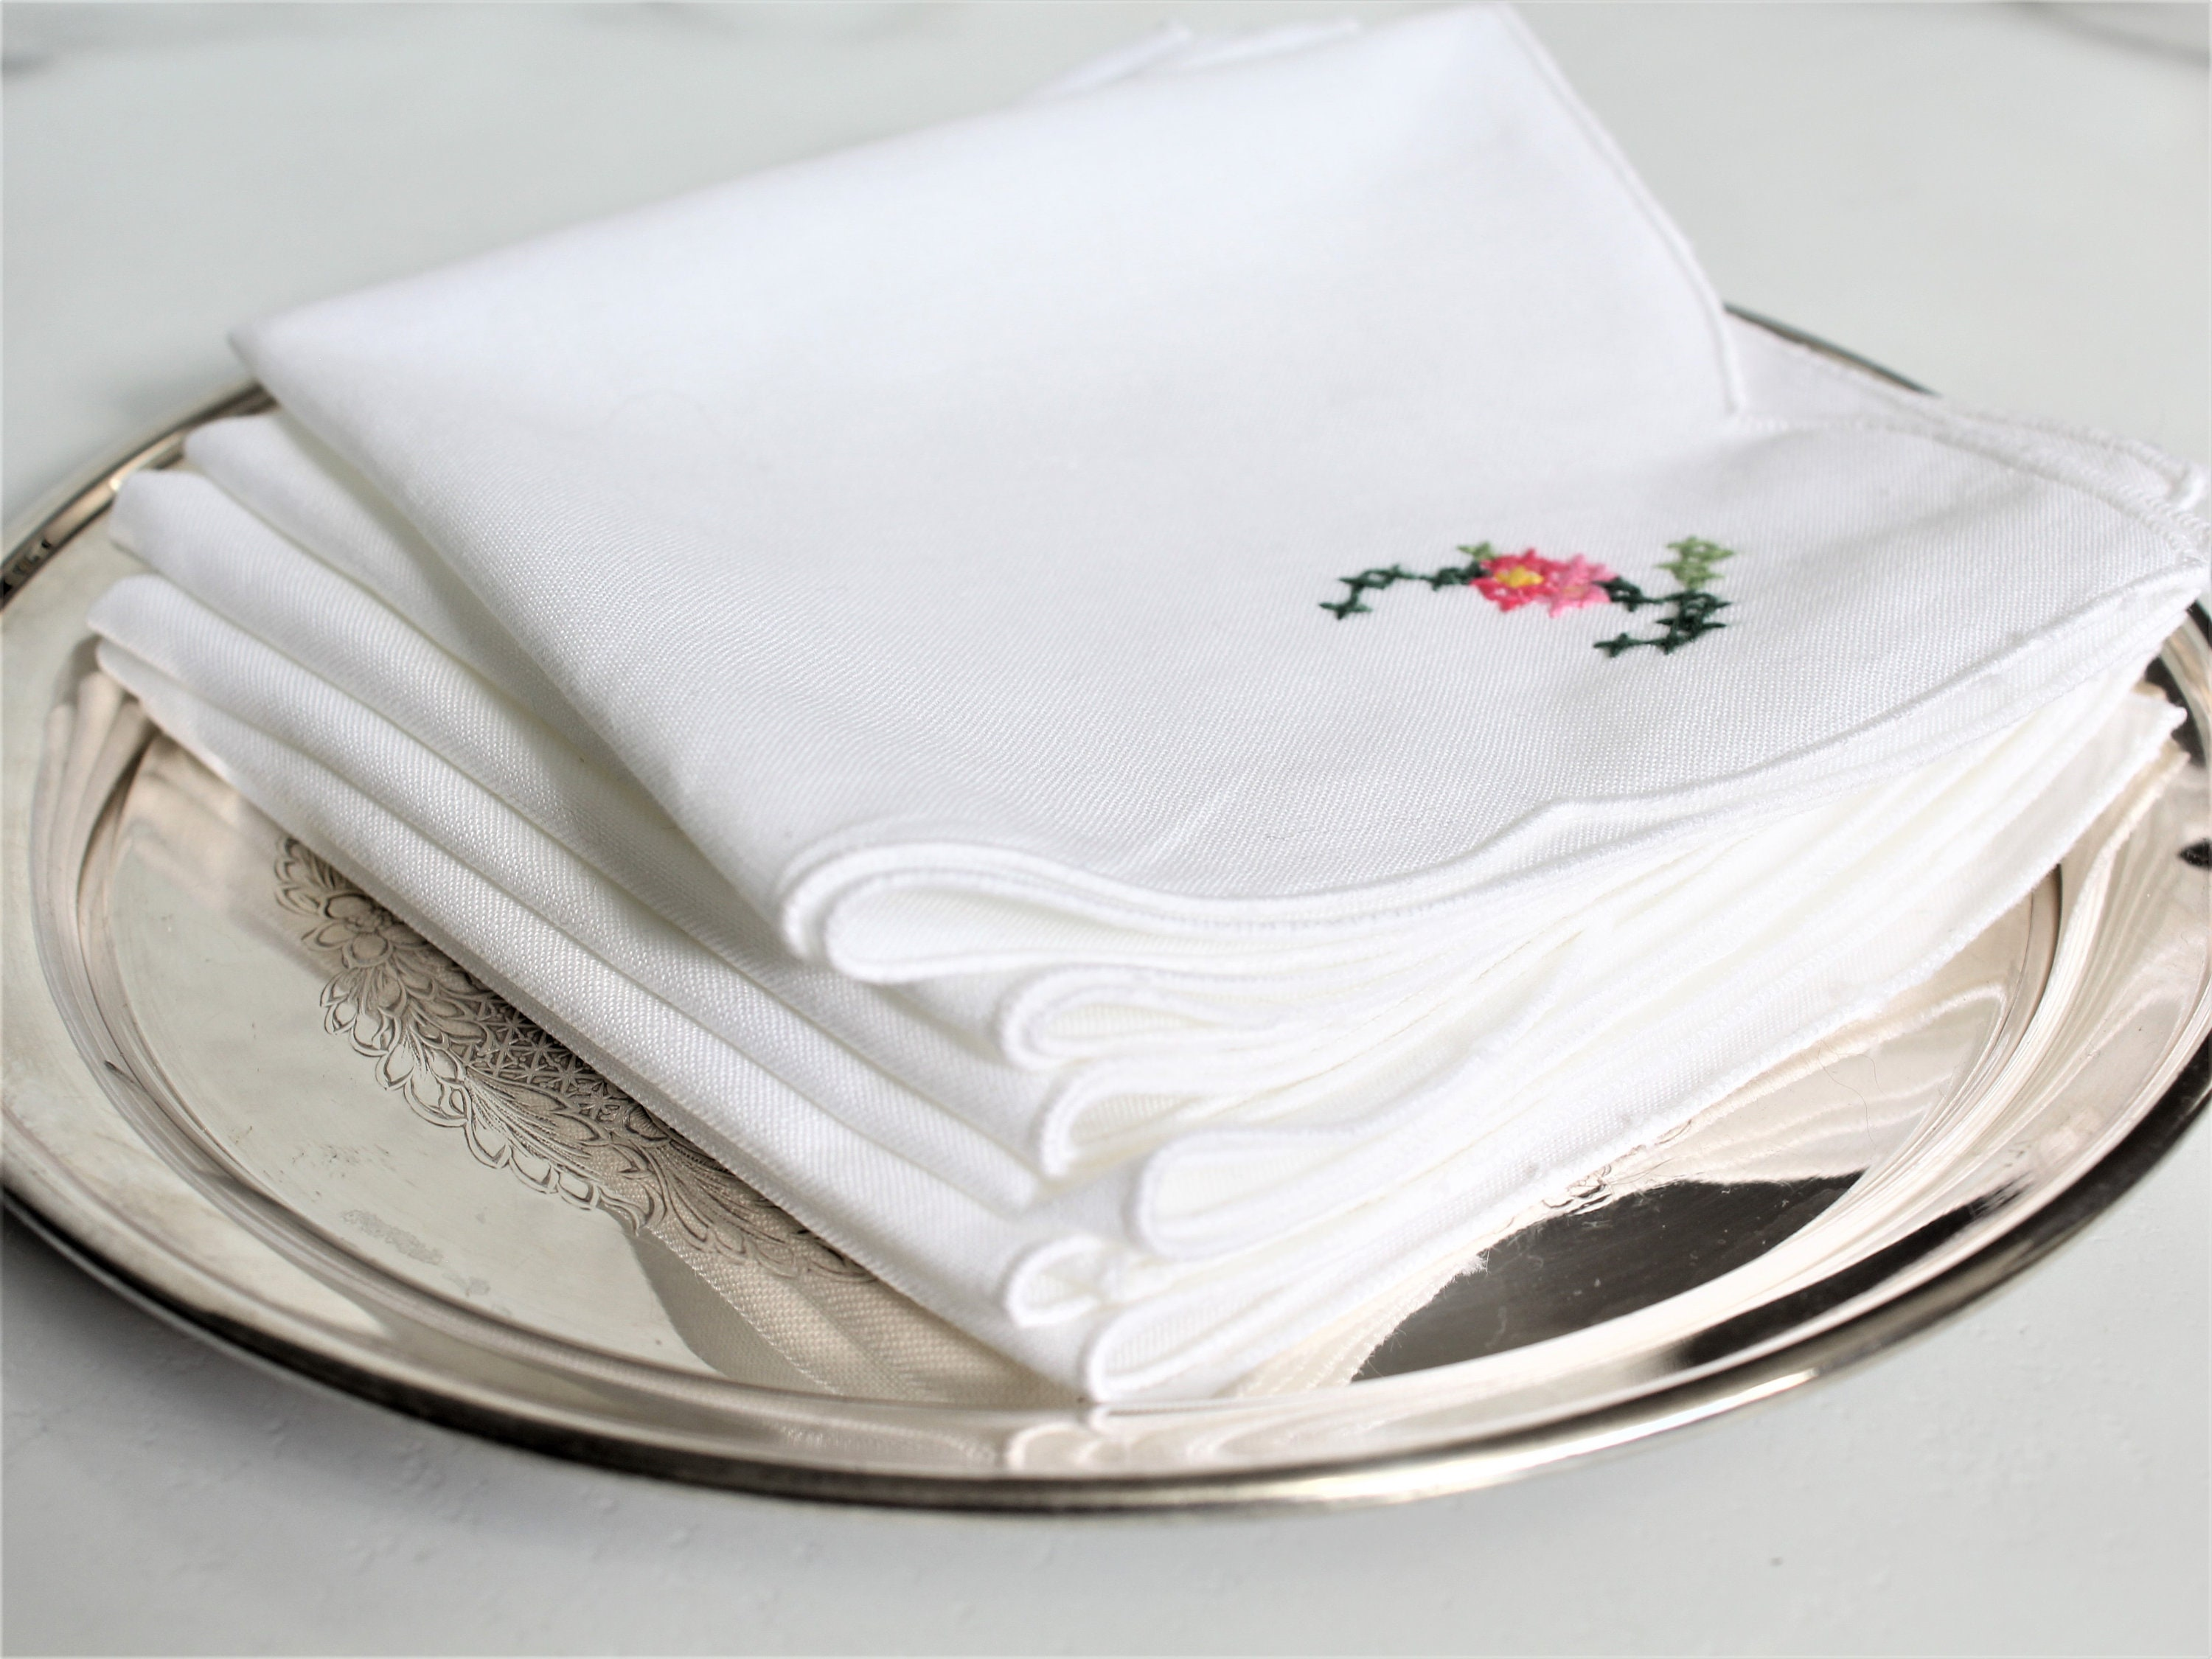 6 Pieces Embroidered Handmade Rosebud Ribbon Embroidery Fabric Tissue Box Cover